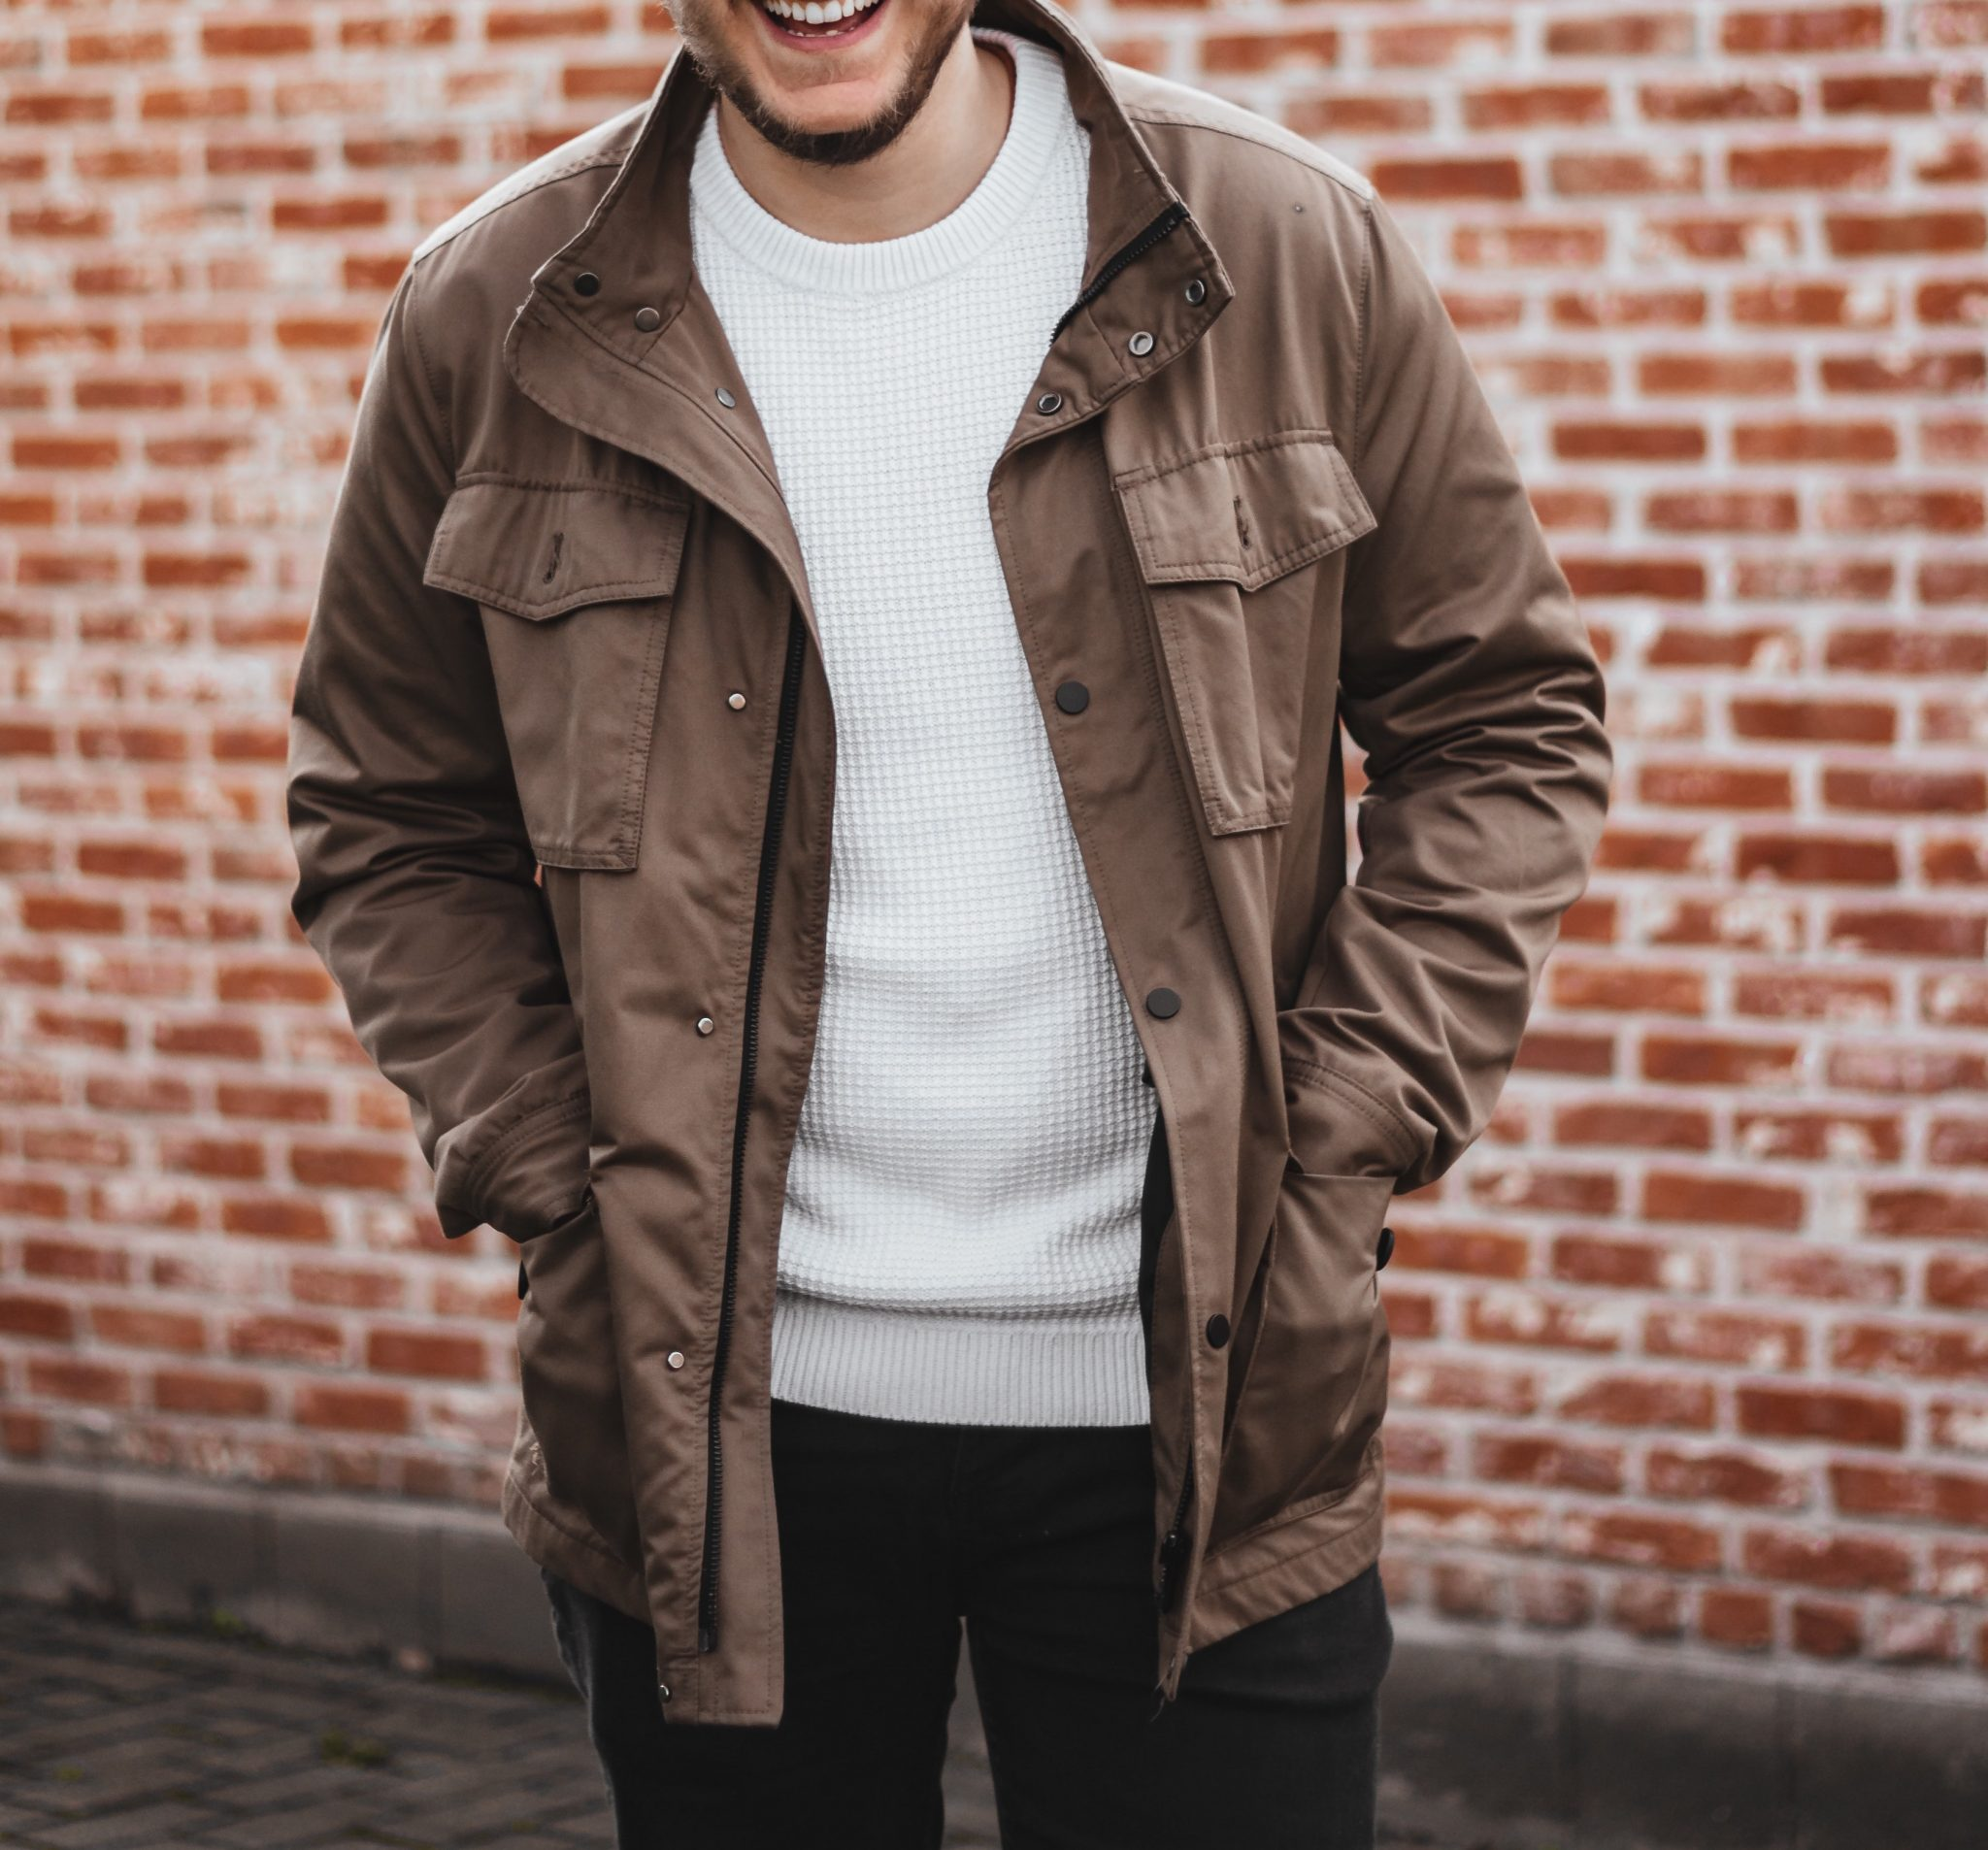 The Art of Layering: Field Jackets